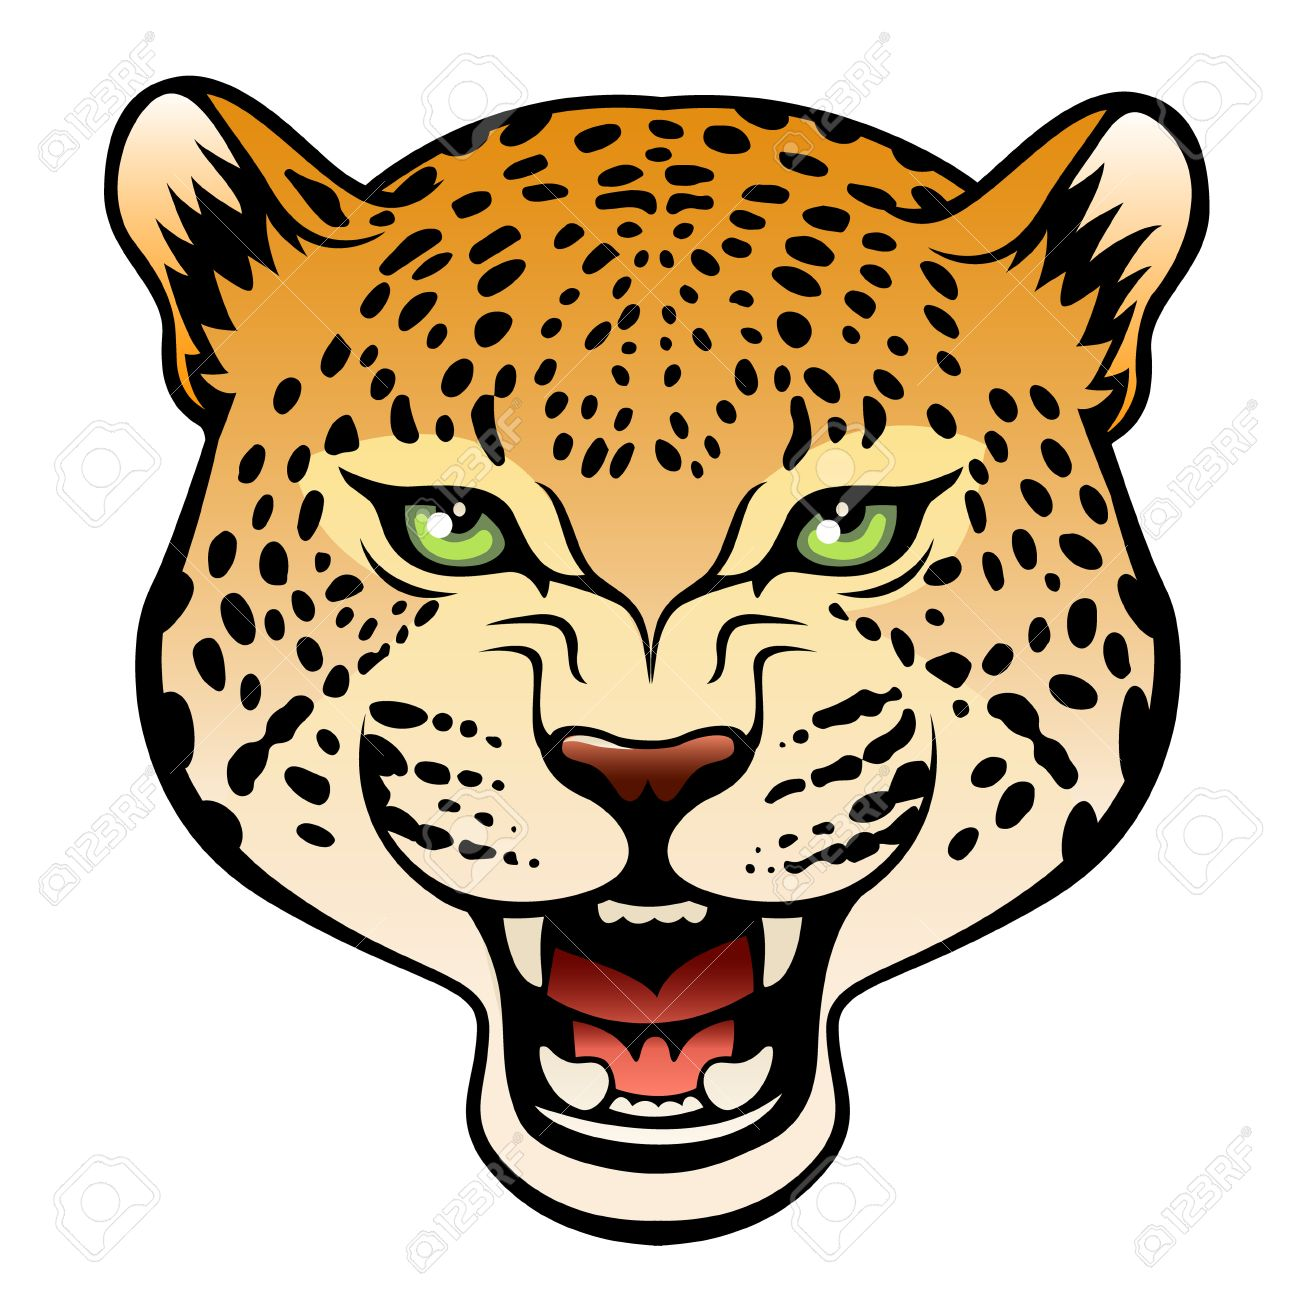 head of roaring leopard isolated on white background royalty free rh 123rf com snow leopard clipart leopard clip art images